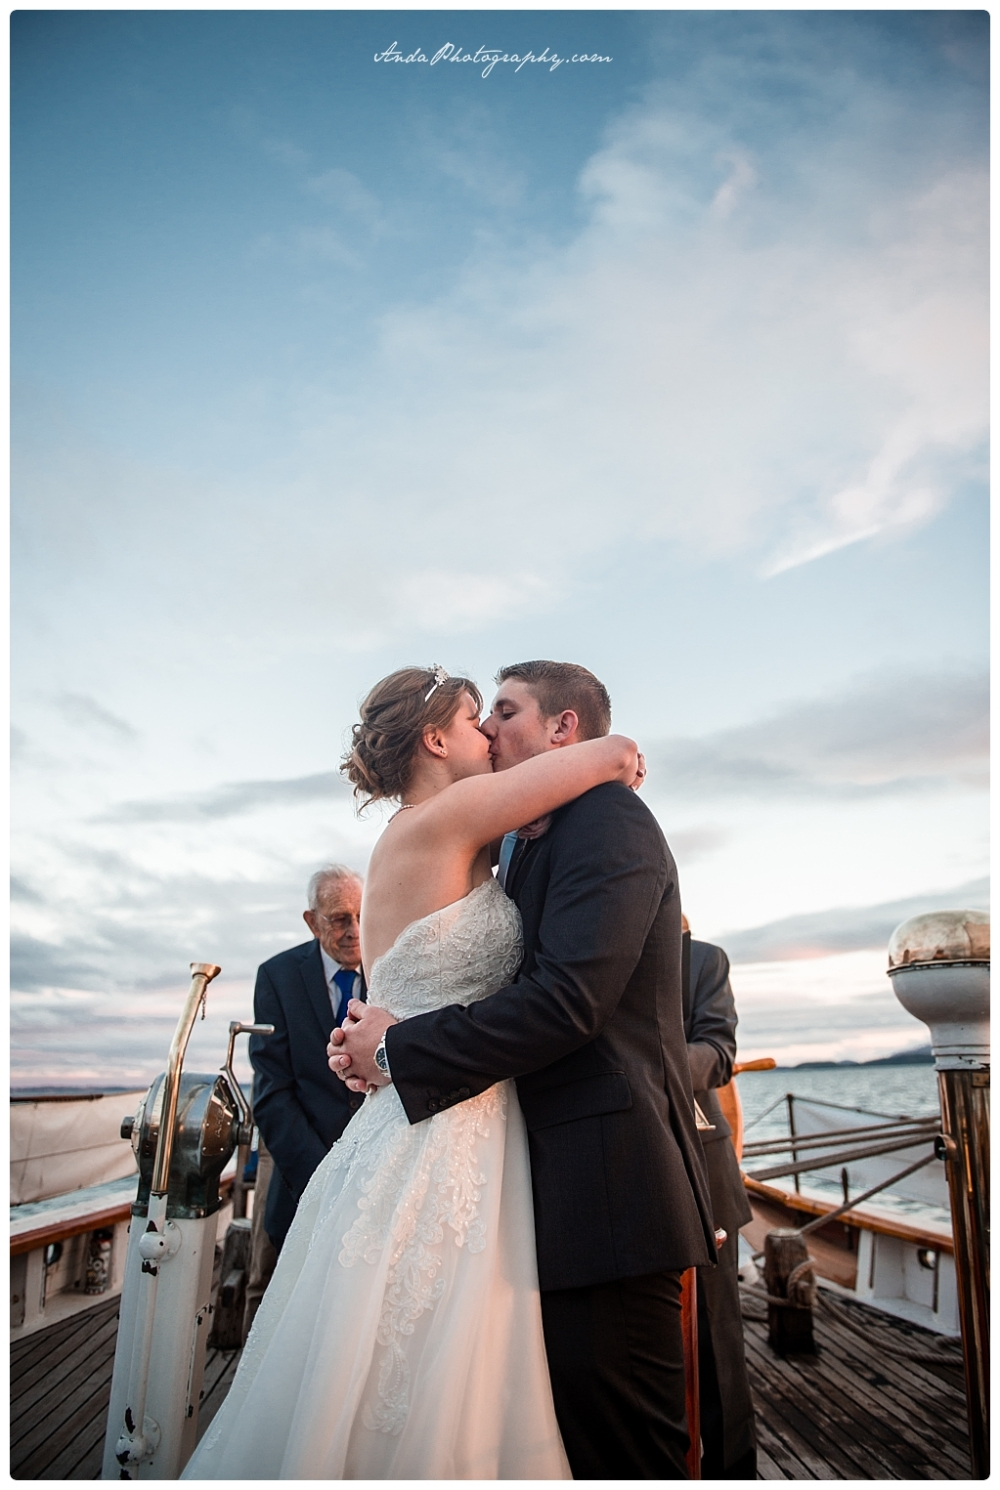 Anda Photography Bellingham wedding photographer seattle wedding photographer Schooner Zodiak Wedding photos_0049